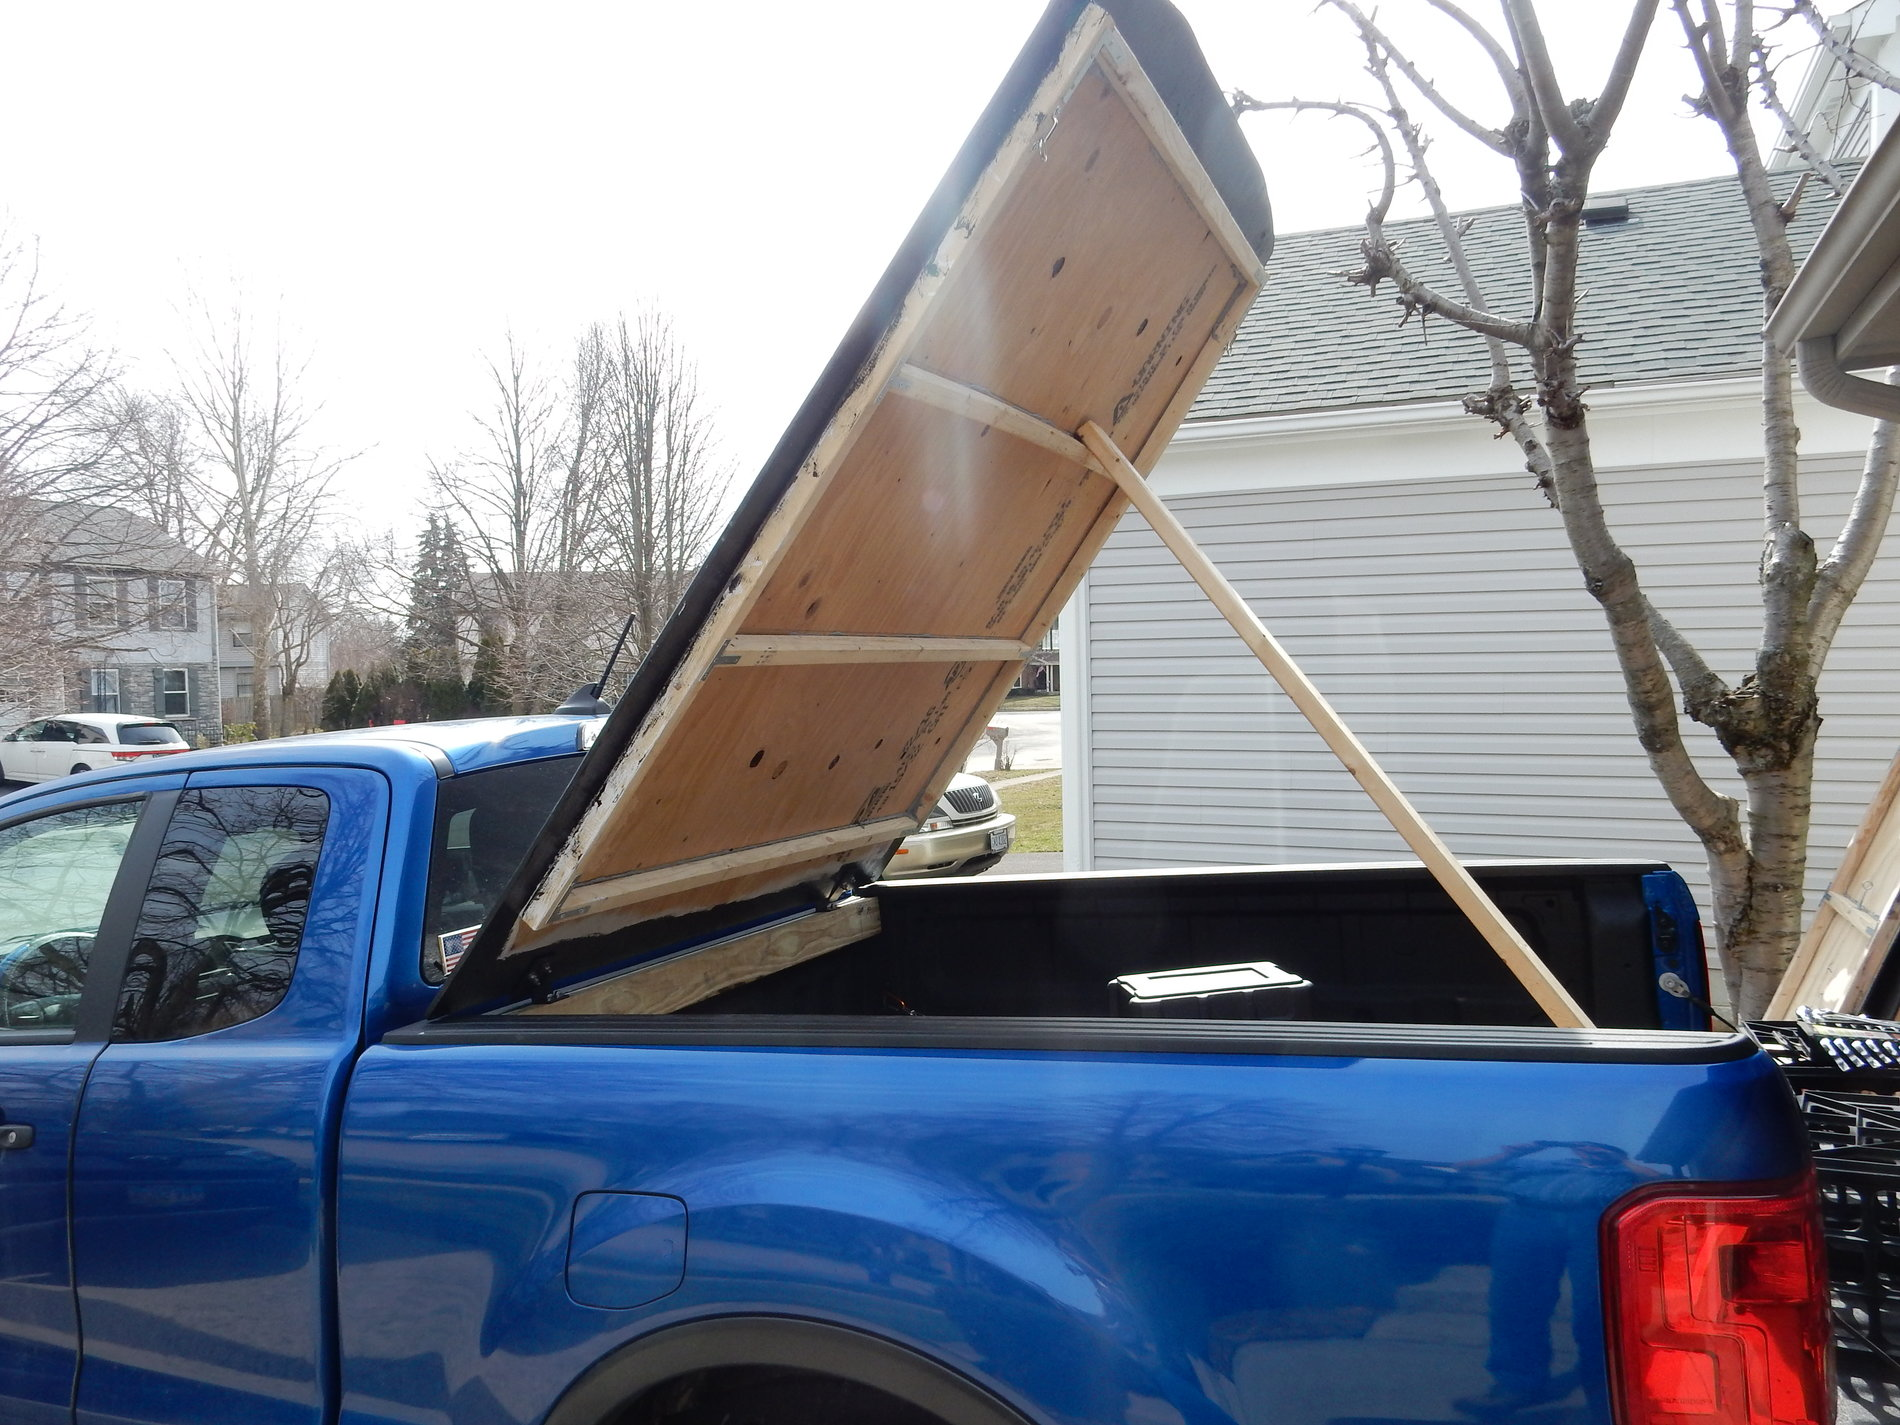 Diy Hillbilly Ii Hard Incline Truck Bed Cover For The 2019 2020 Ford Ranger New Enhanced Designed Pretty Tonneau Page 2 2019 Ford Ranger And Raptor Forum 5th Generation Ranger5g Com